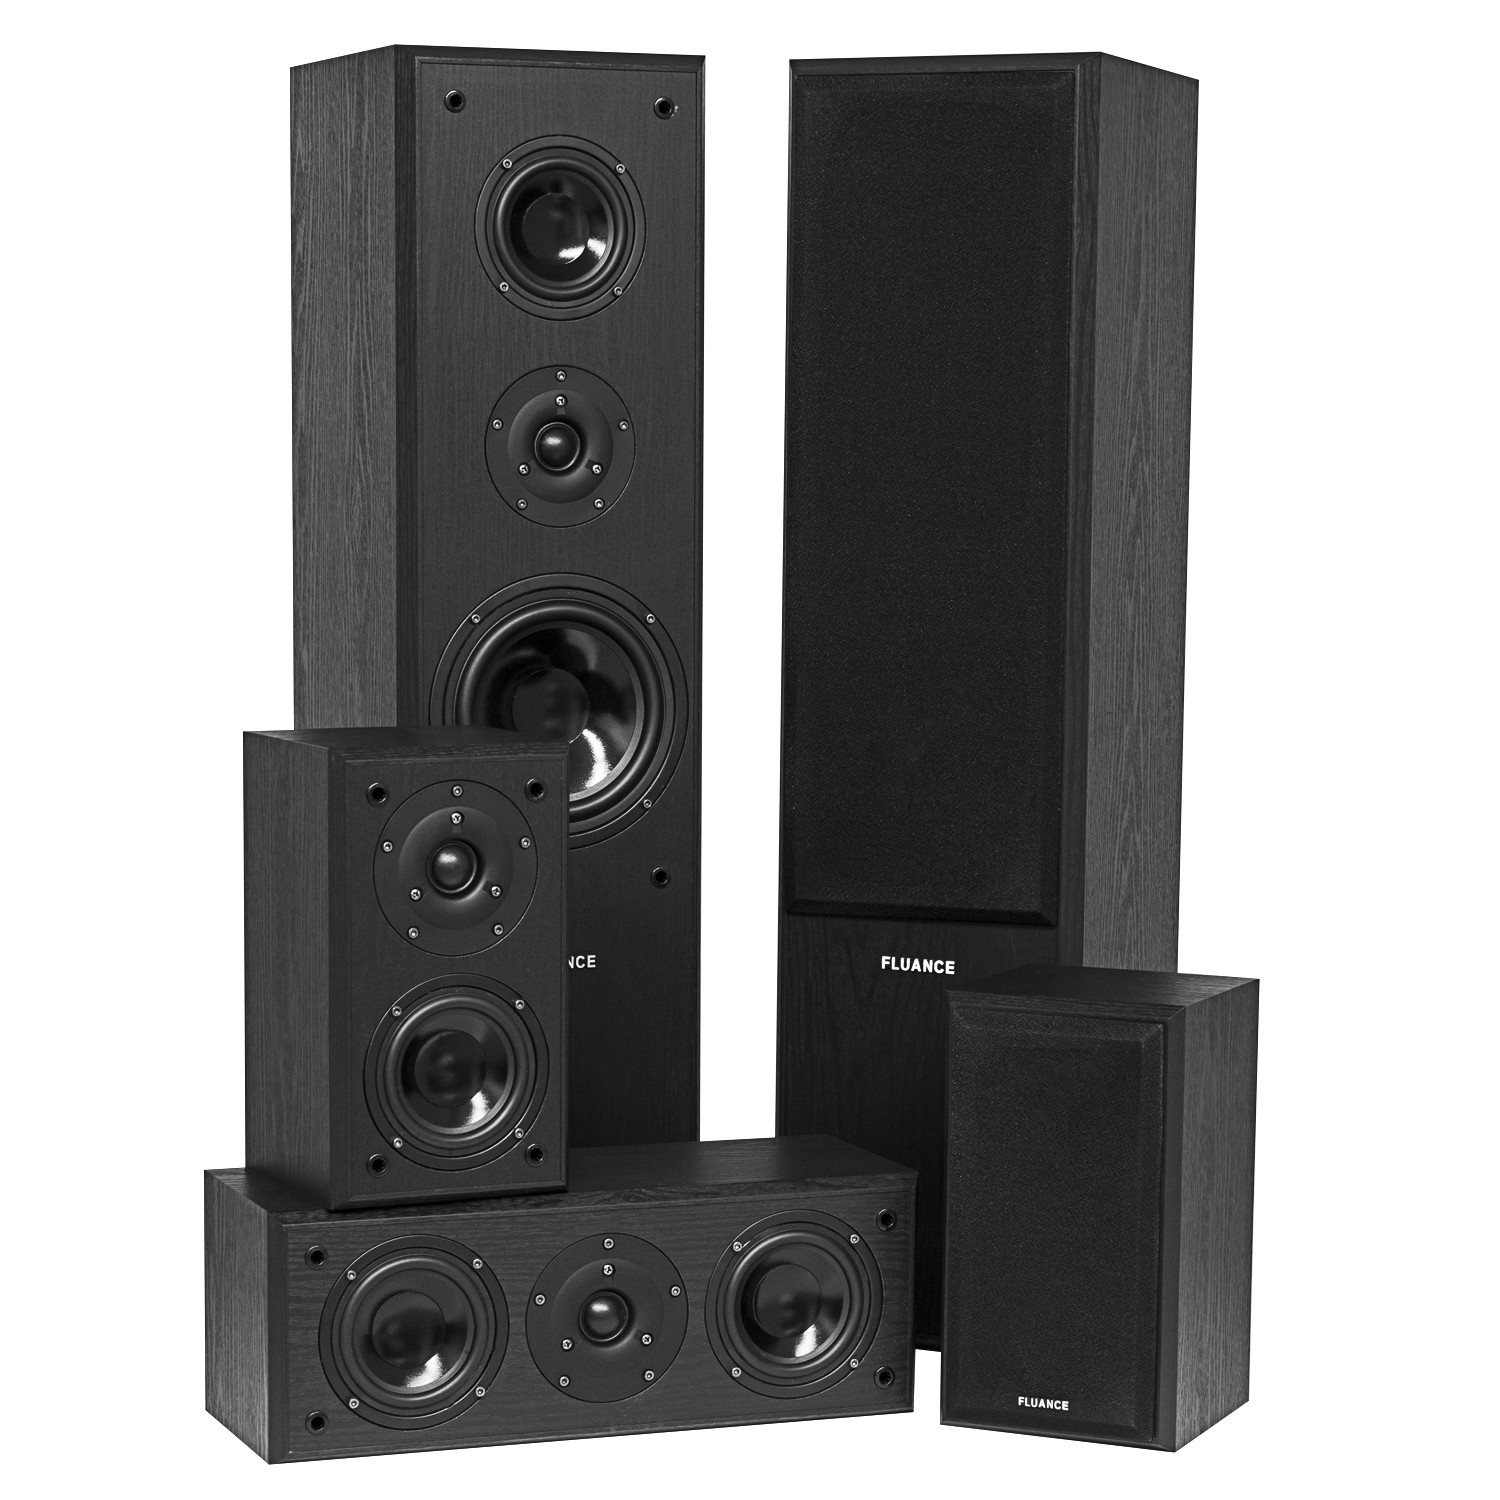 Avhtb Surround Sound Home Theater 5 Speaker System Fluance